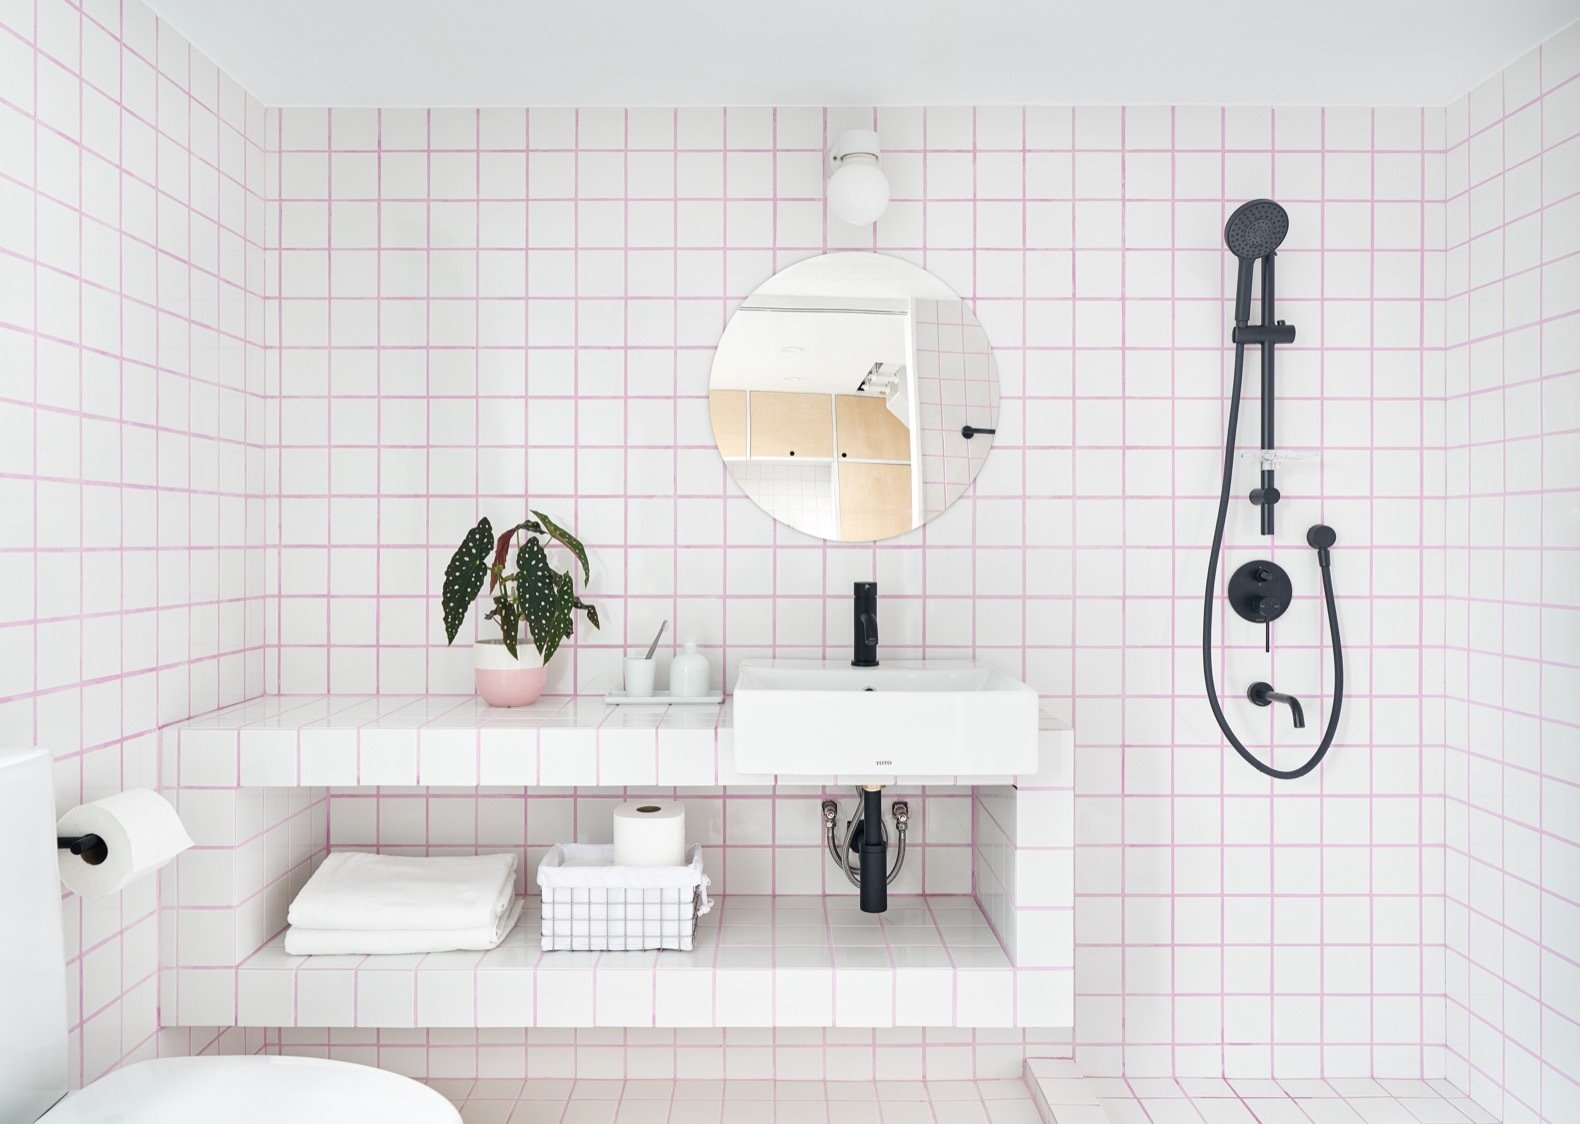 Bath Room, Ceramic Tile Floor, Vessel Sink, Tile Counter, Ceramic Tile Wall, Two Piece Toilet, Open Shower, and Wall Lighting The colored tile grout was sourced from Grout360. The tiles are from RAK Ceramics.    Photos from A Tiny Taipei Apartment Pursues Muji-Like Minimalism For $35K